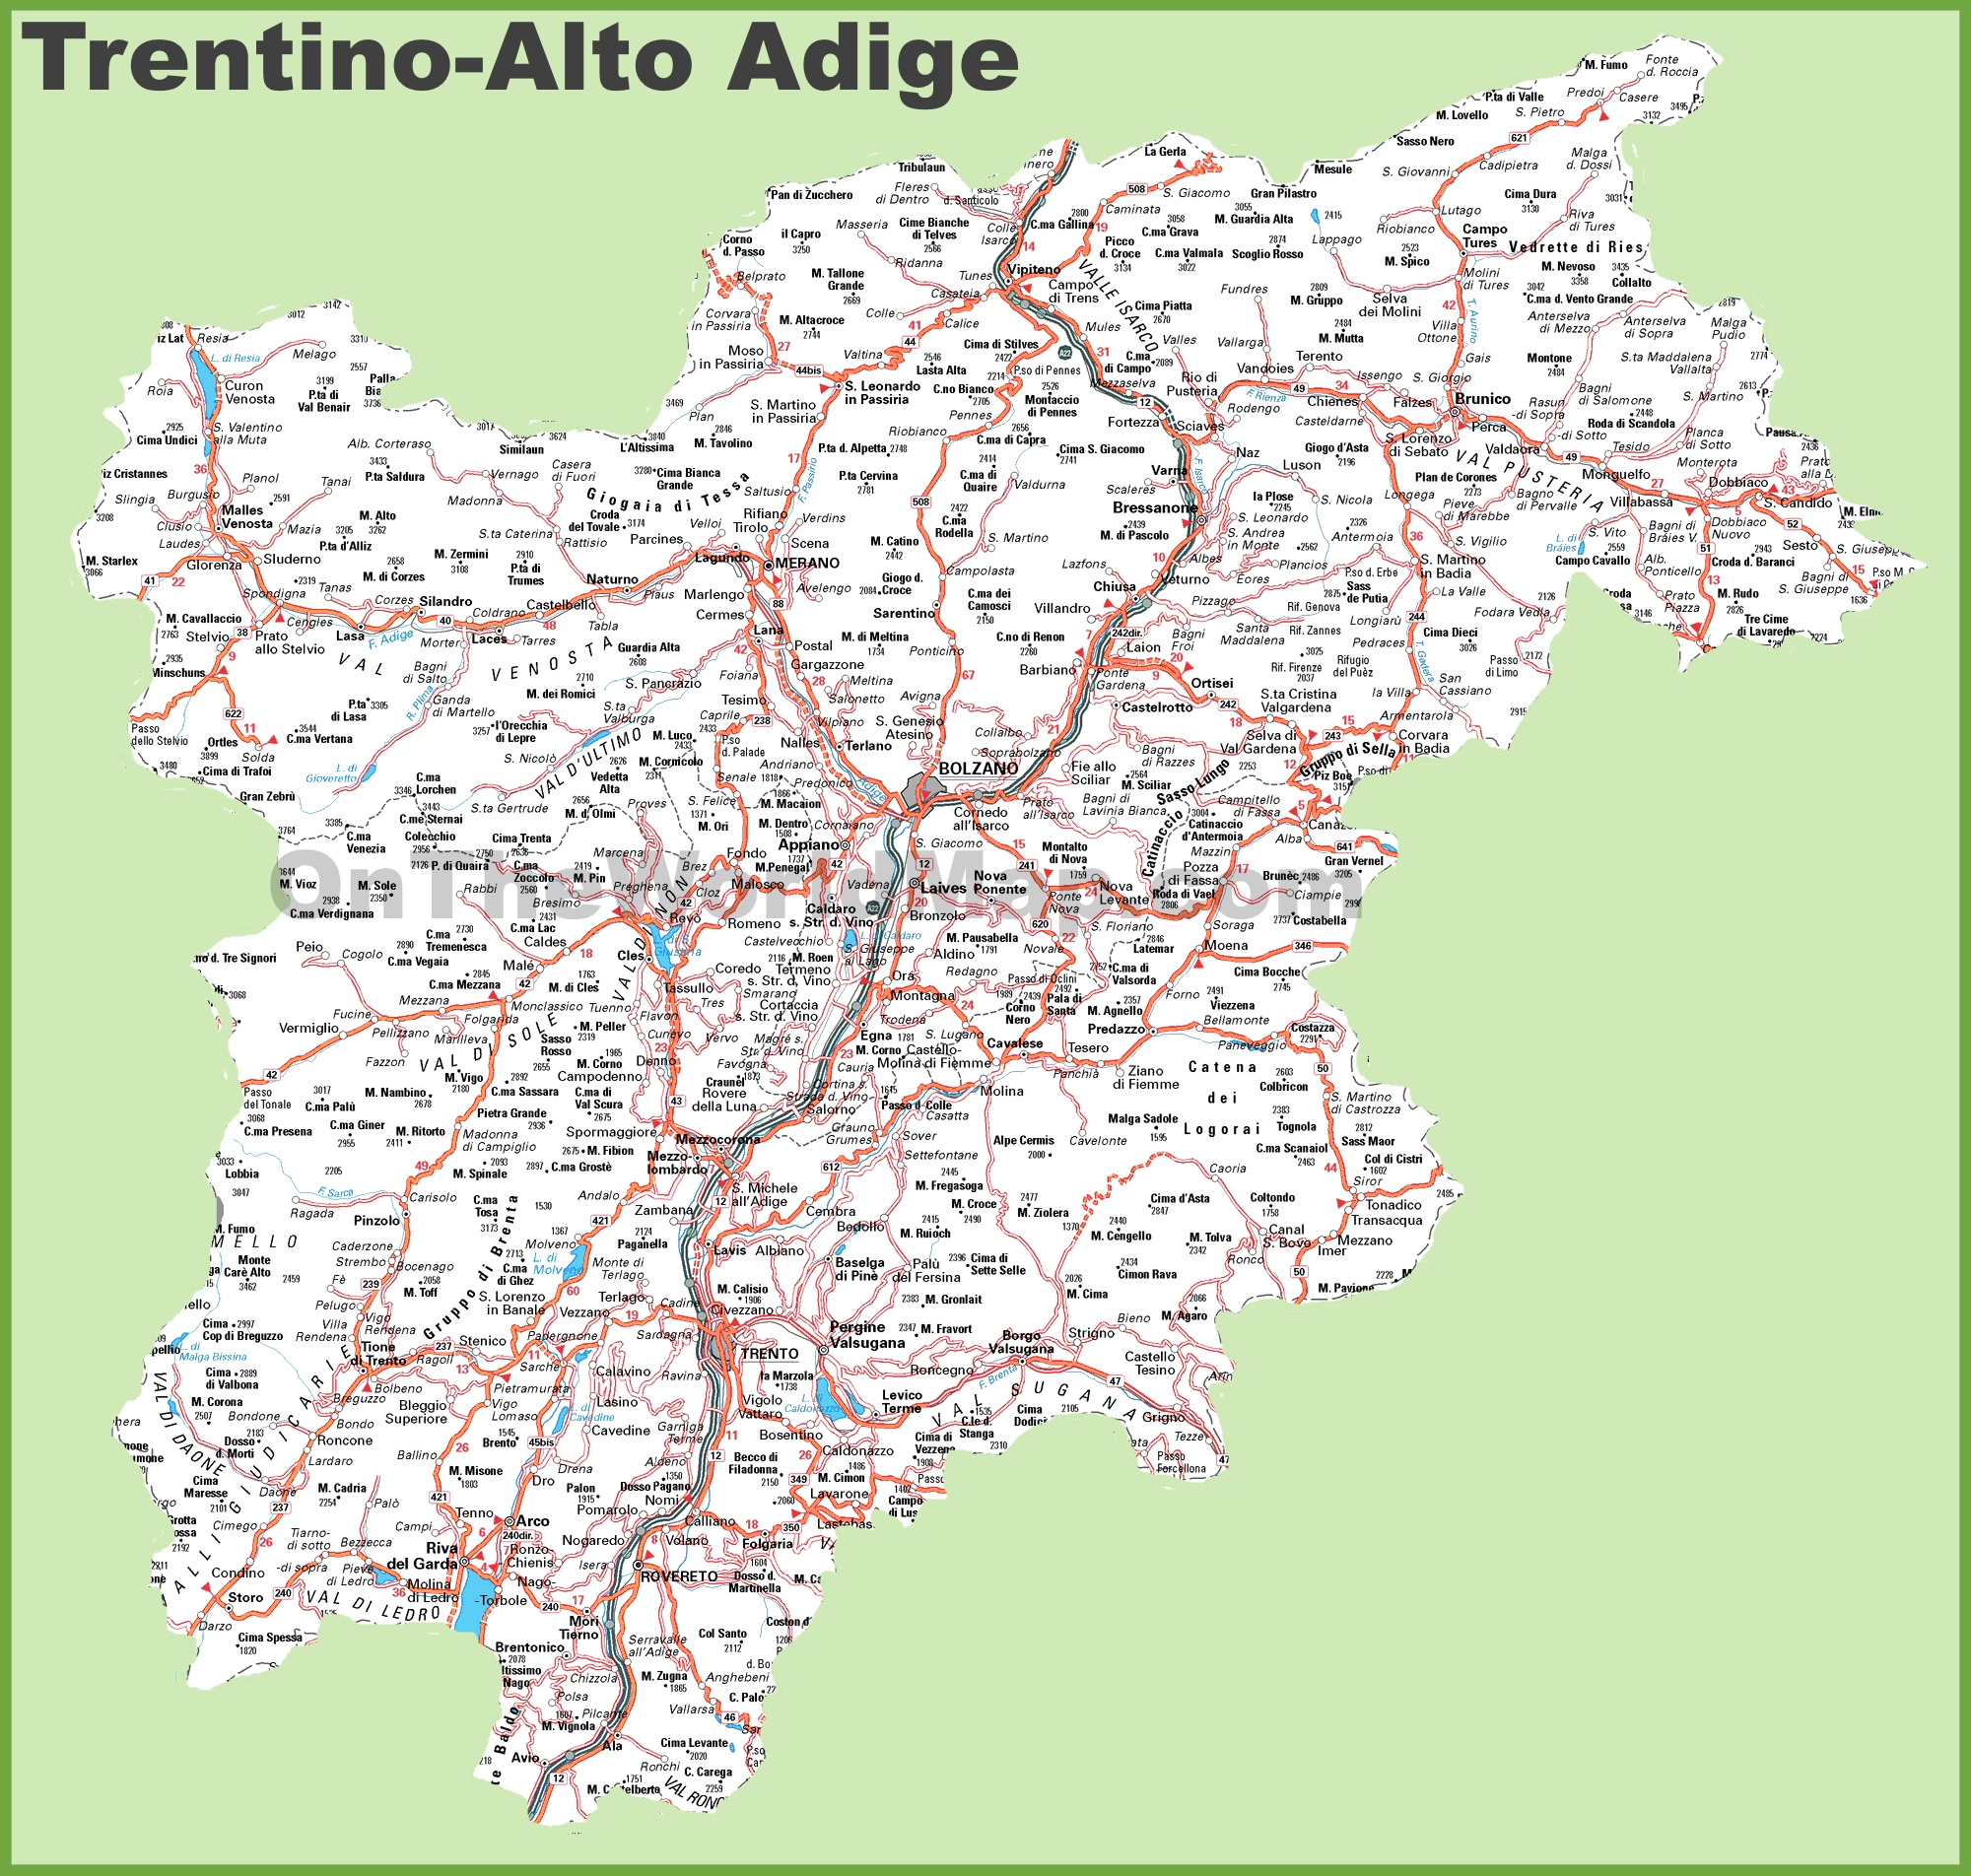 Cartina Italia Trentino Alto Adige.Large Detailed Map Of Trentino Alto Adige With Cities And Towns